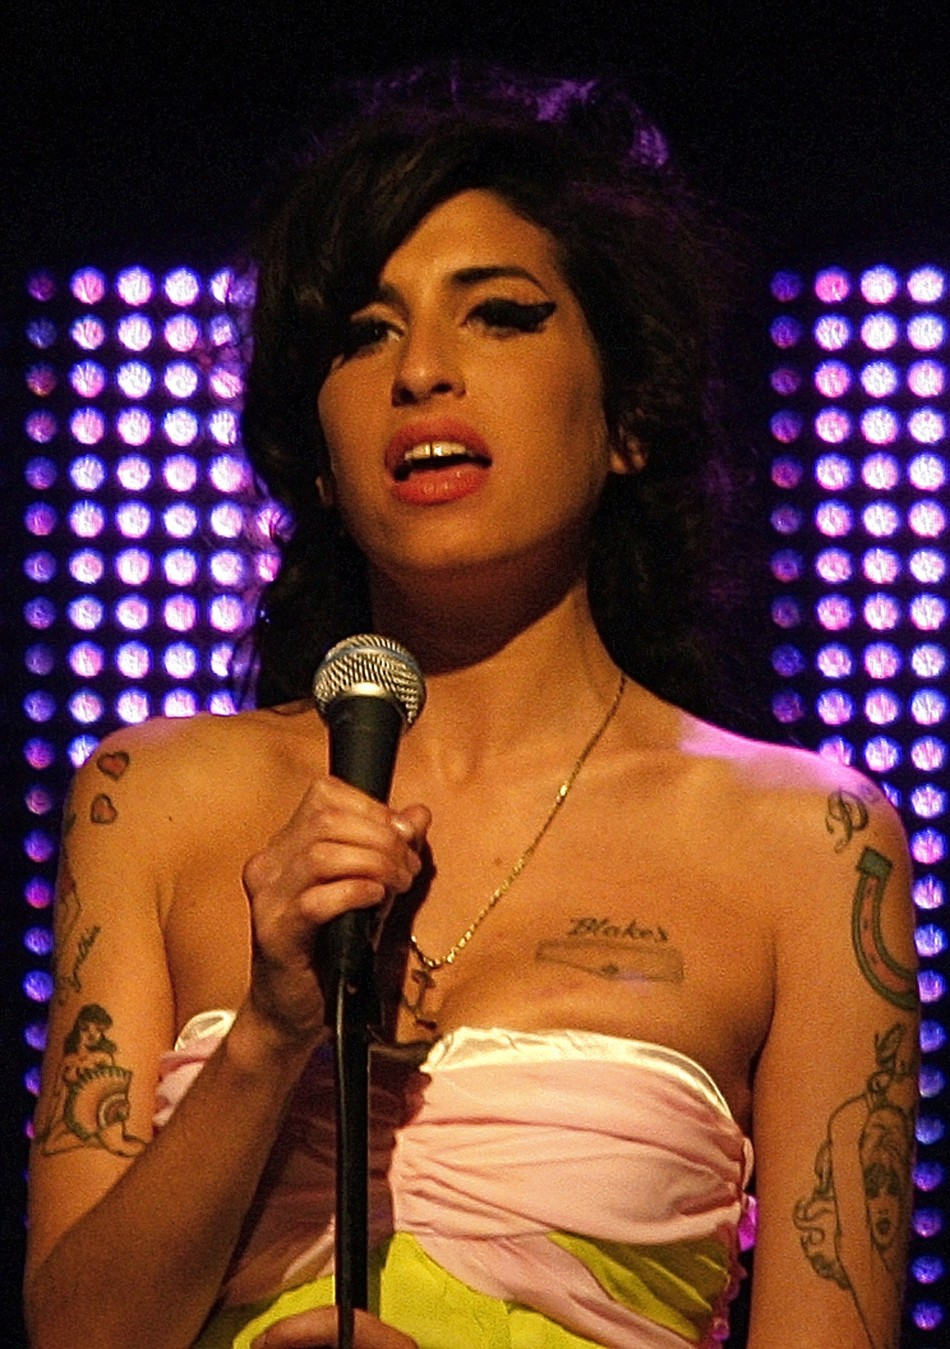 Amy Winehouse died on 23 July, 2011 aged 27 at her London home. She had been struggling with substance abuse for years. The cause of her death is unknown as yet.